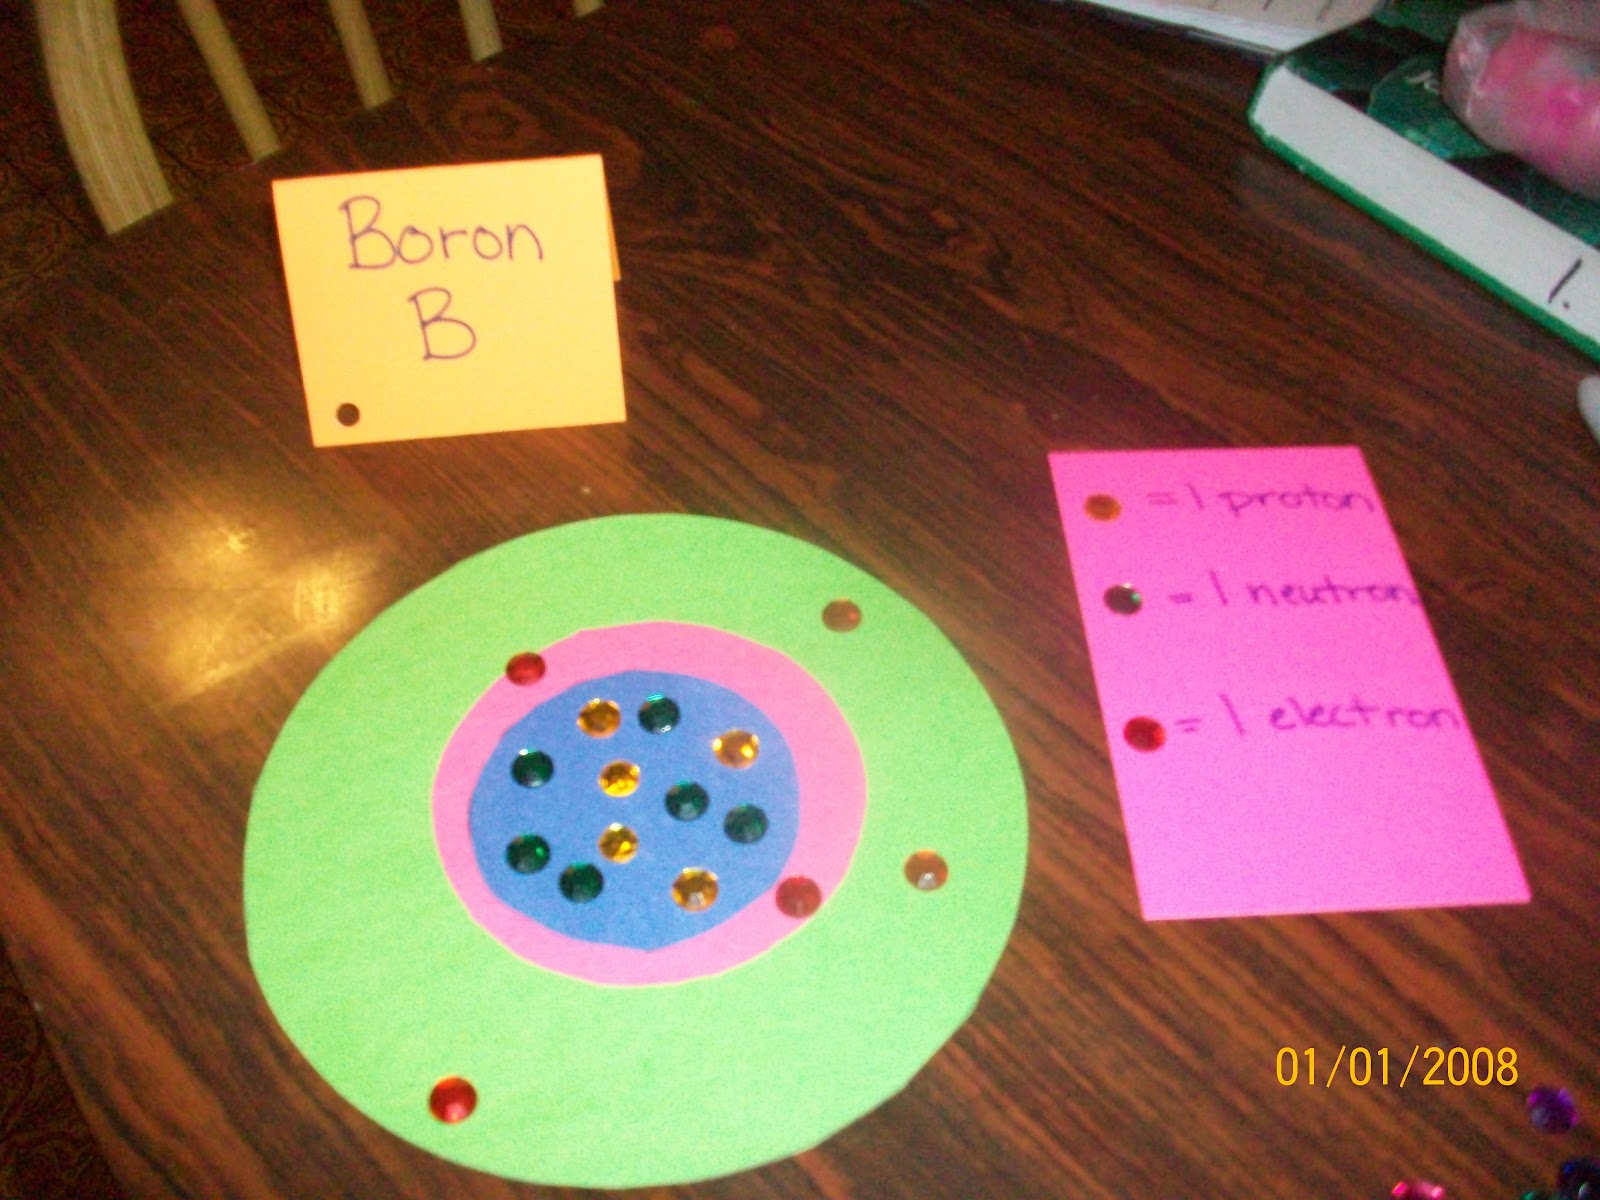 Scientific Method States Of Matter Activity 2 Atom And Atomic Structure Activity 3 Common